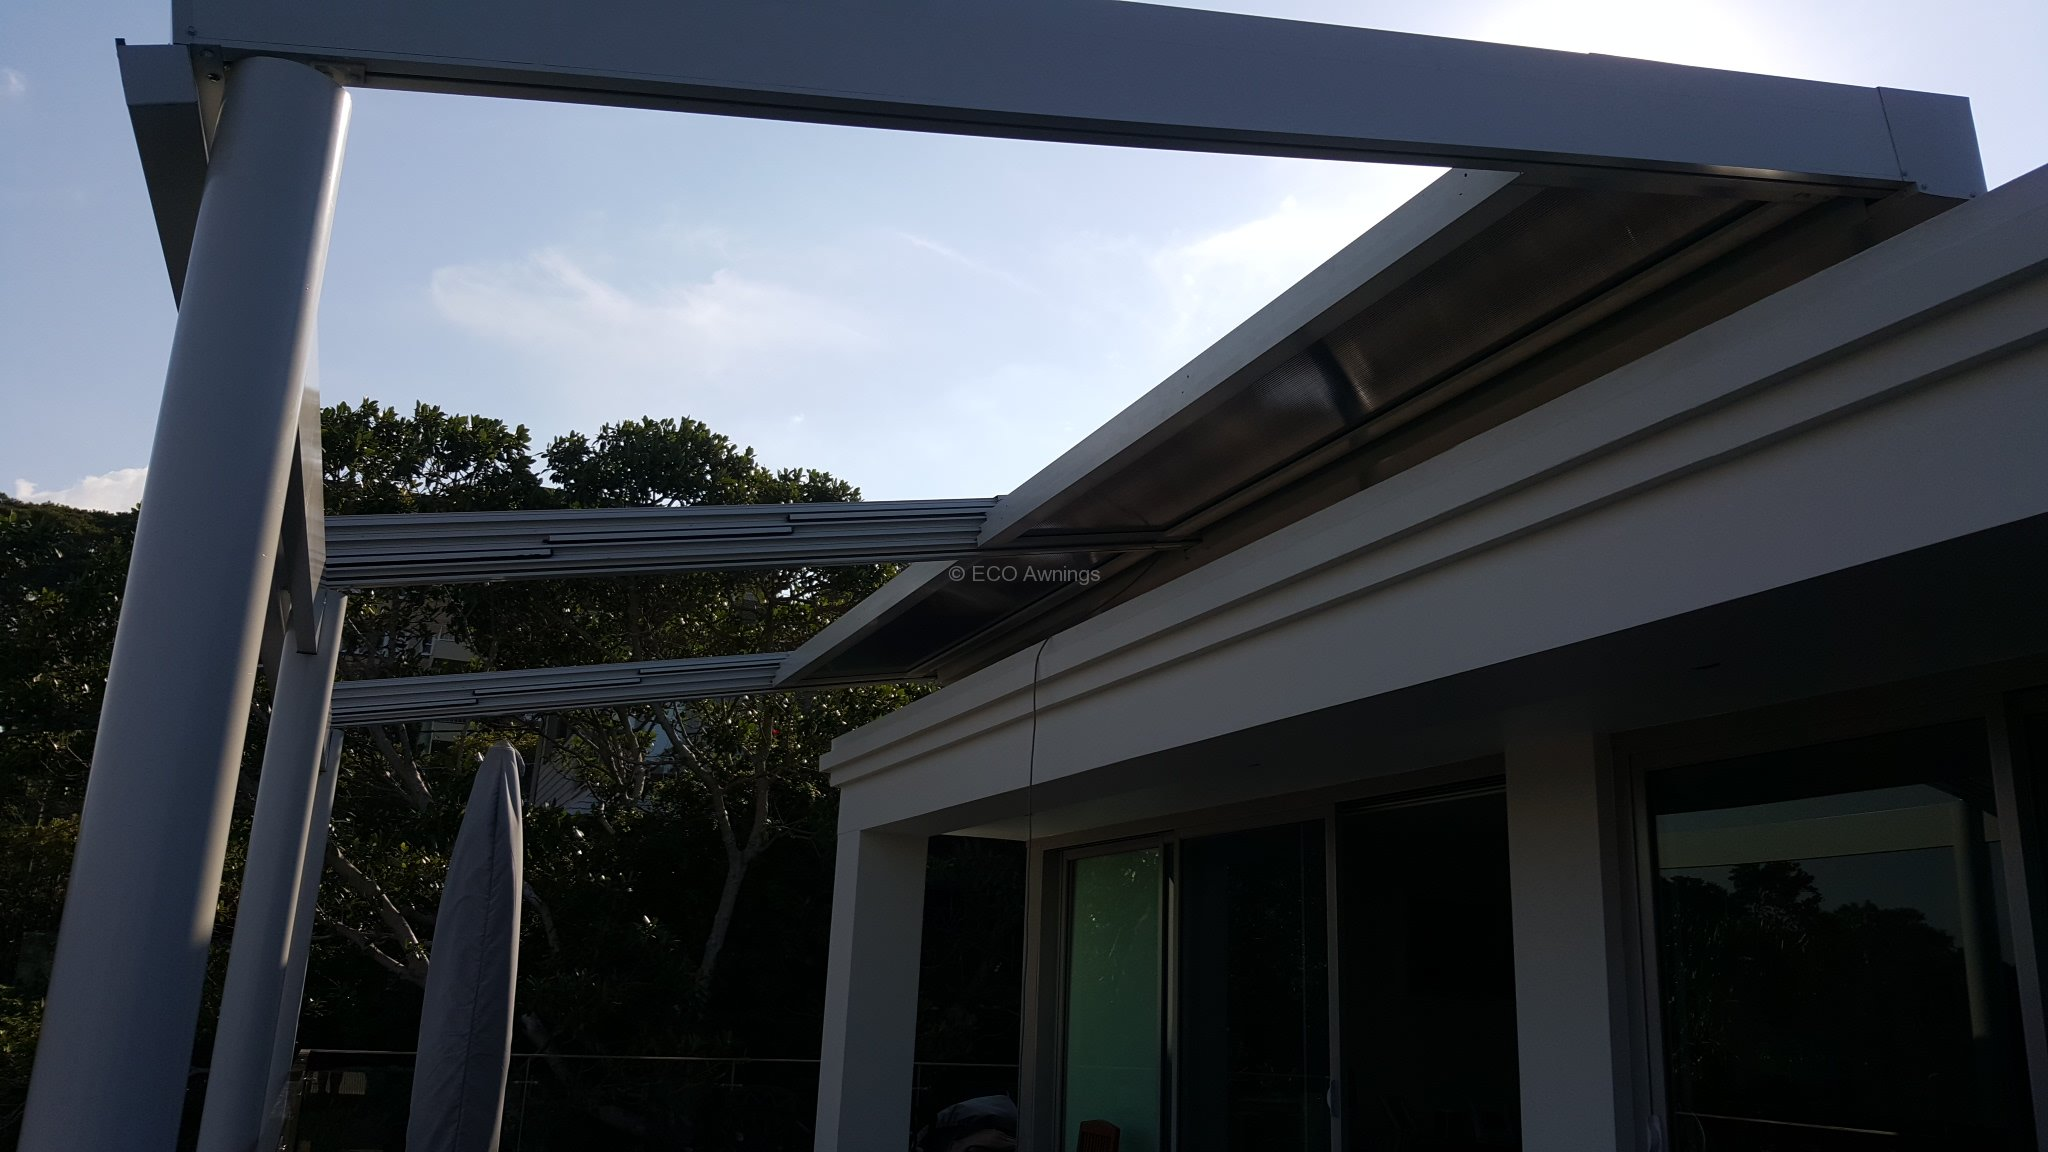 fair awning armmarkilux 1300 folding arm awning retracta r